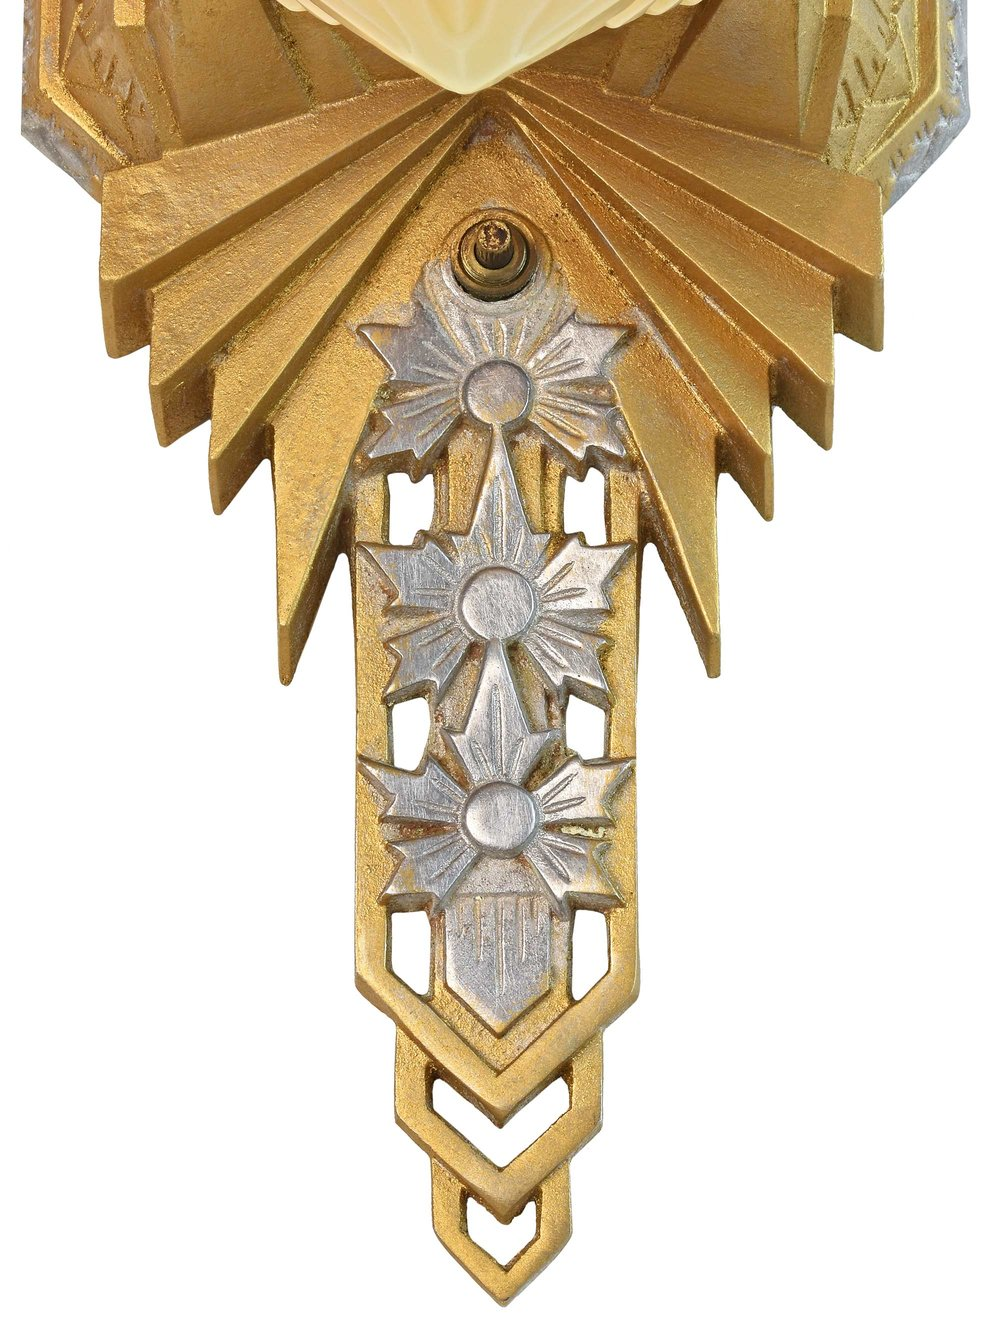 46651-art-deco-sconce-with-molded-custard-glass-detail.jpg